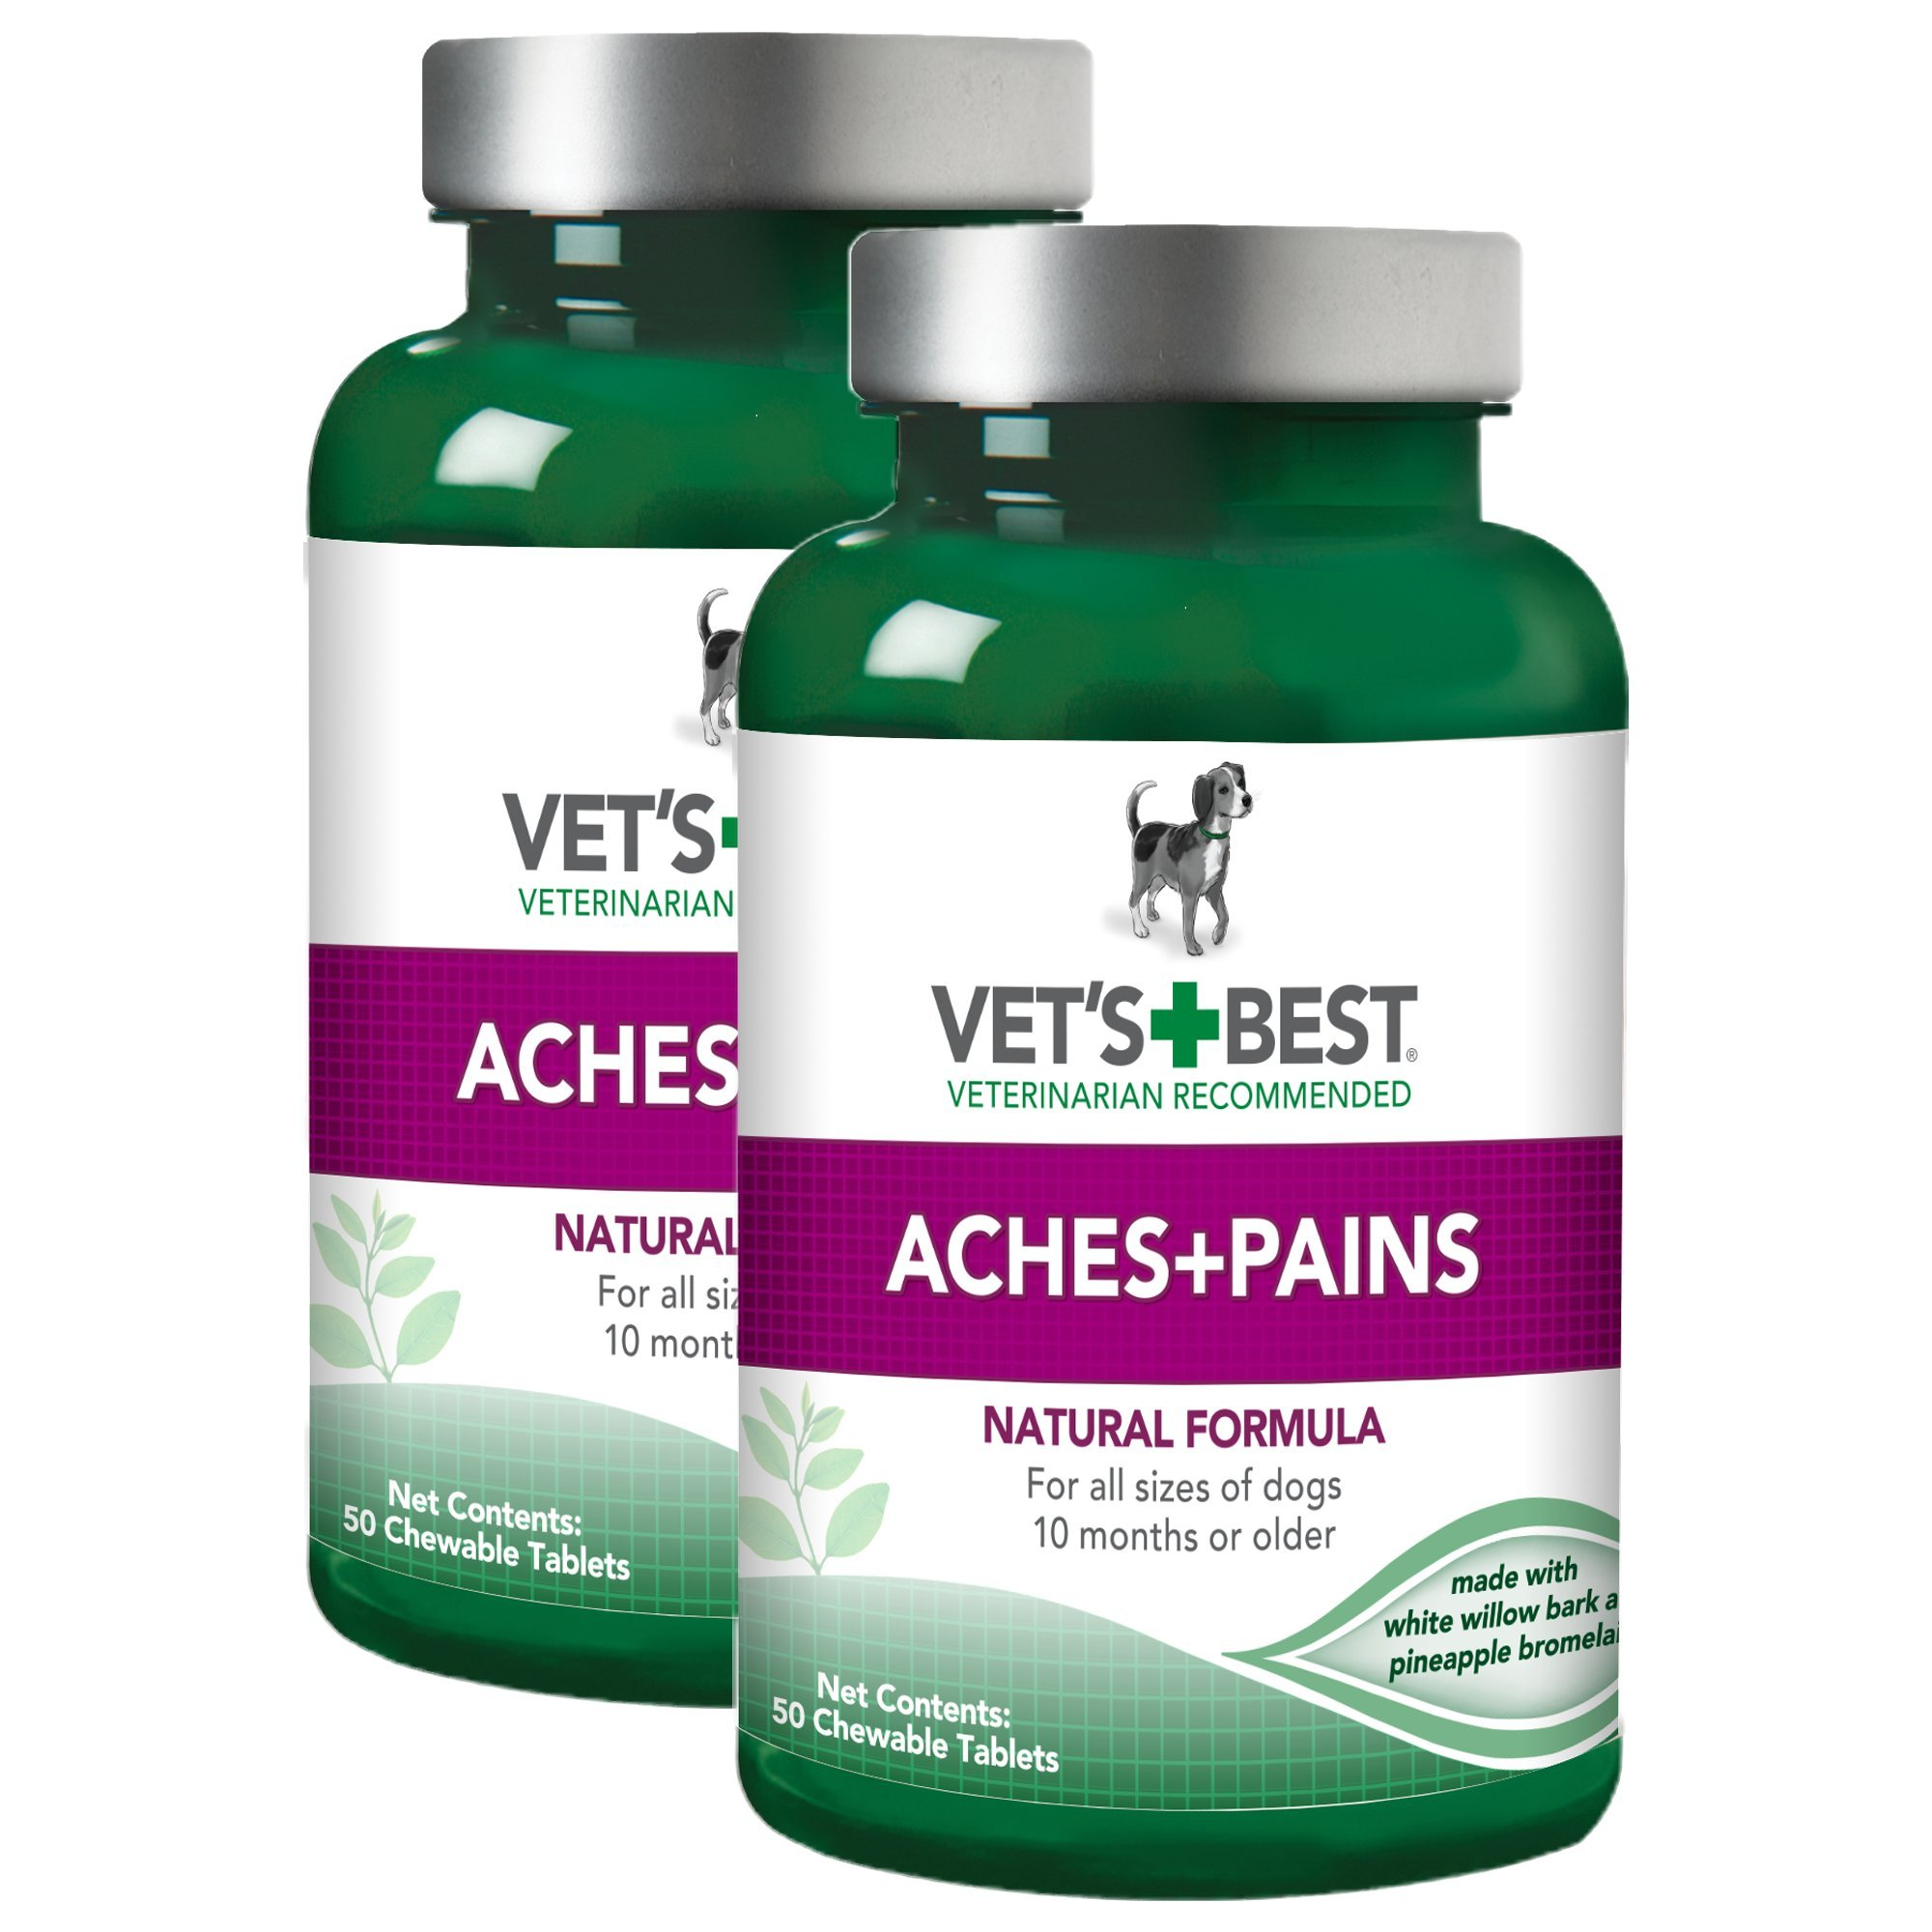 Vet's Best Aspirin Free Aches and Pains Dog Supplements, Natural Formula … (2 Pack) by Vet's Best (Image #1)